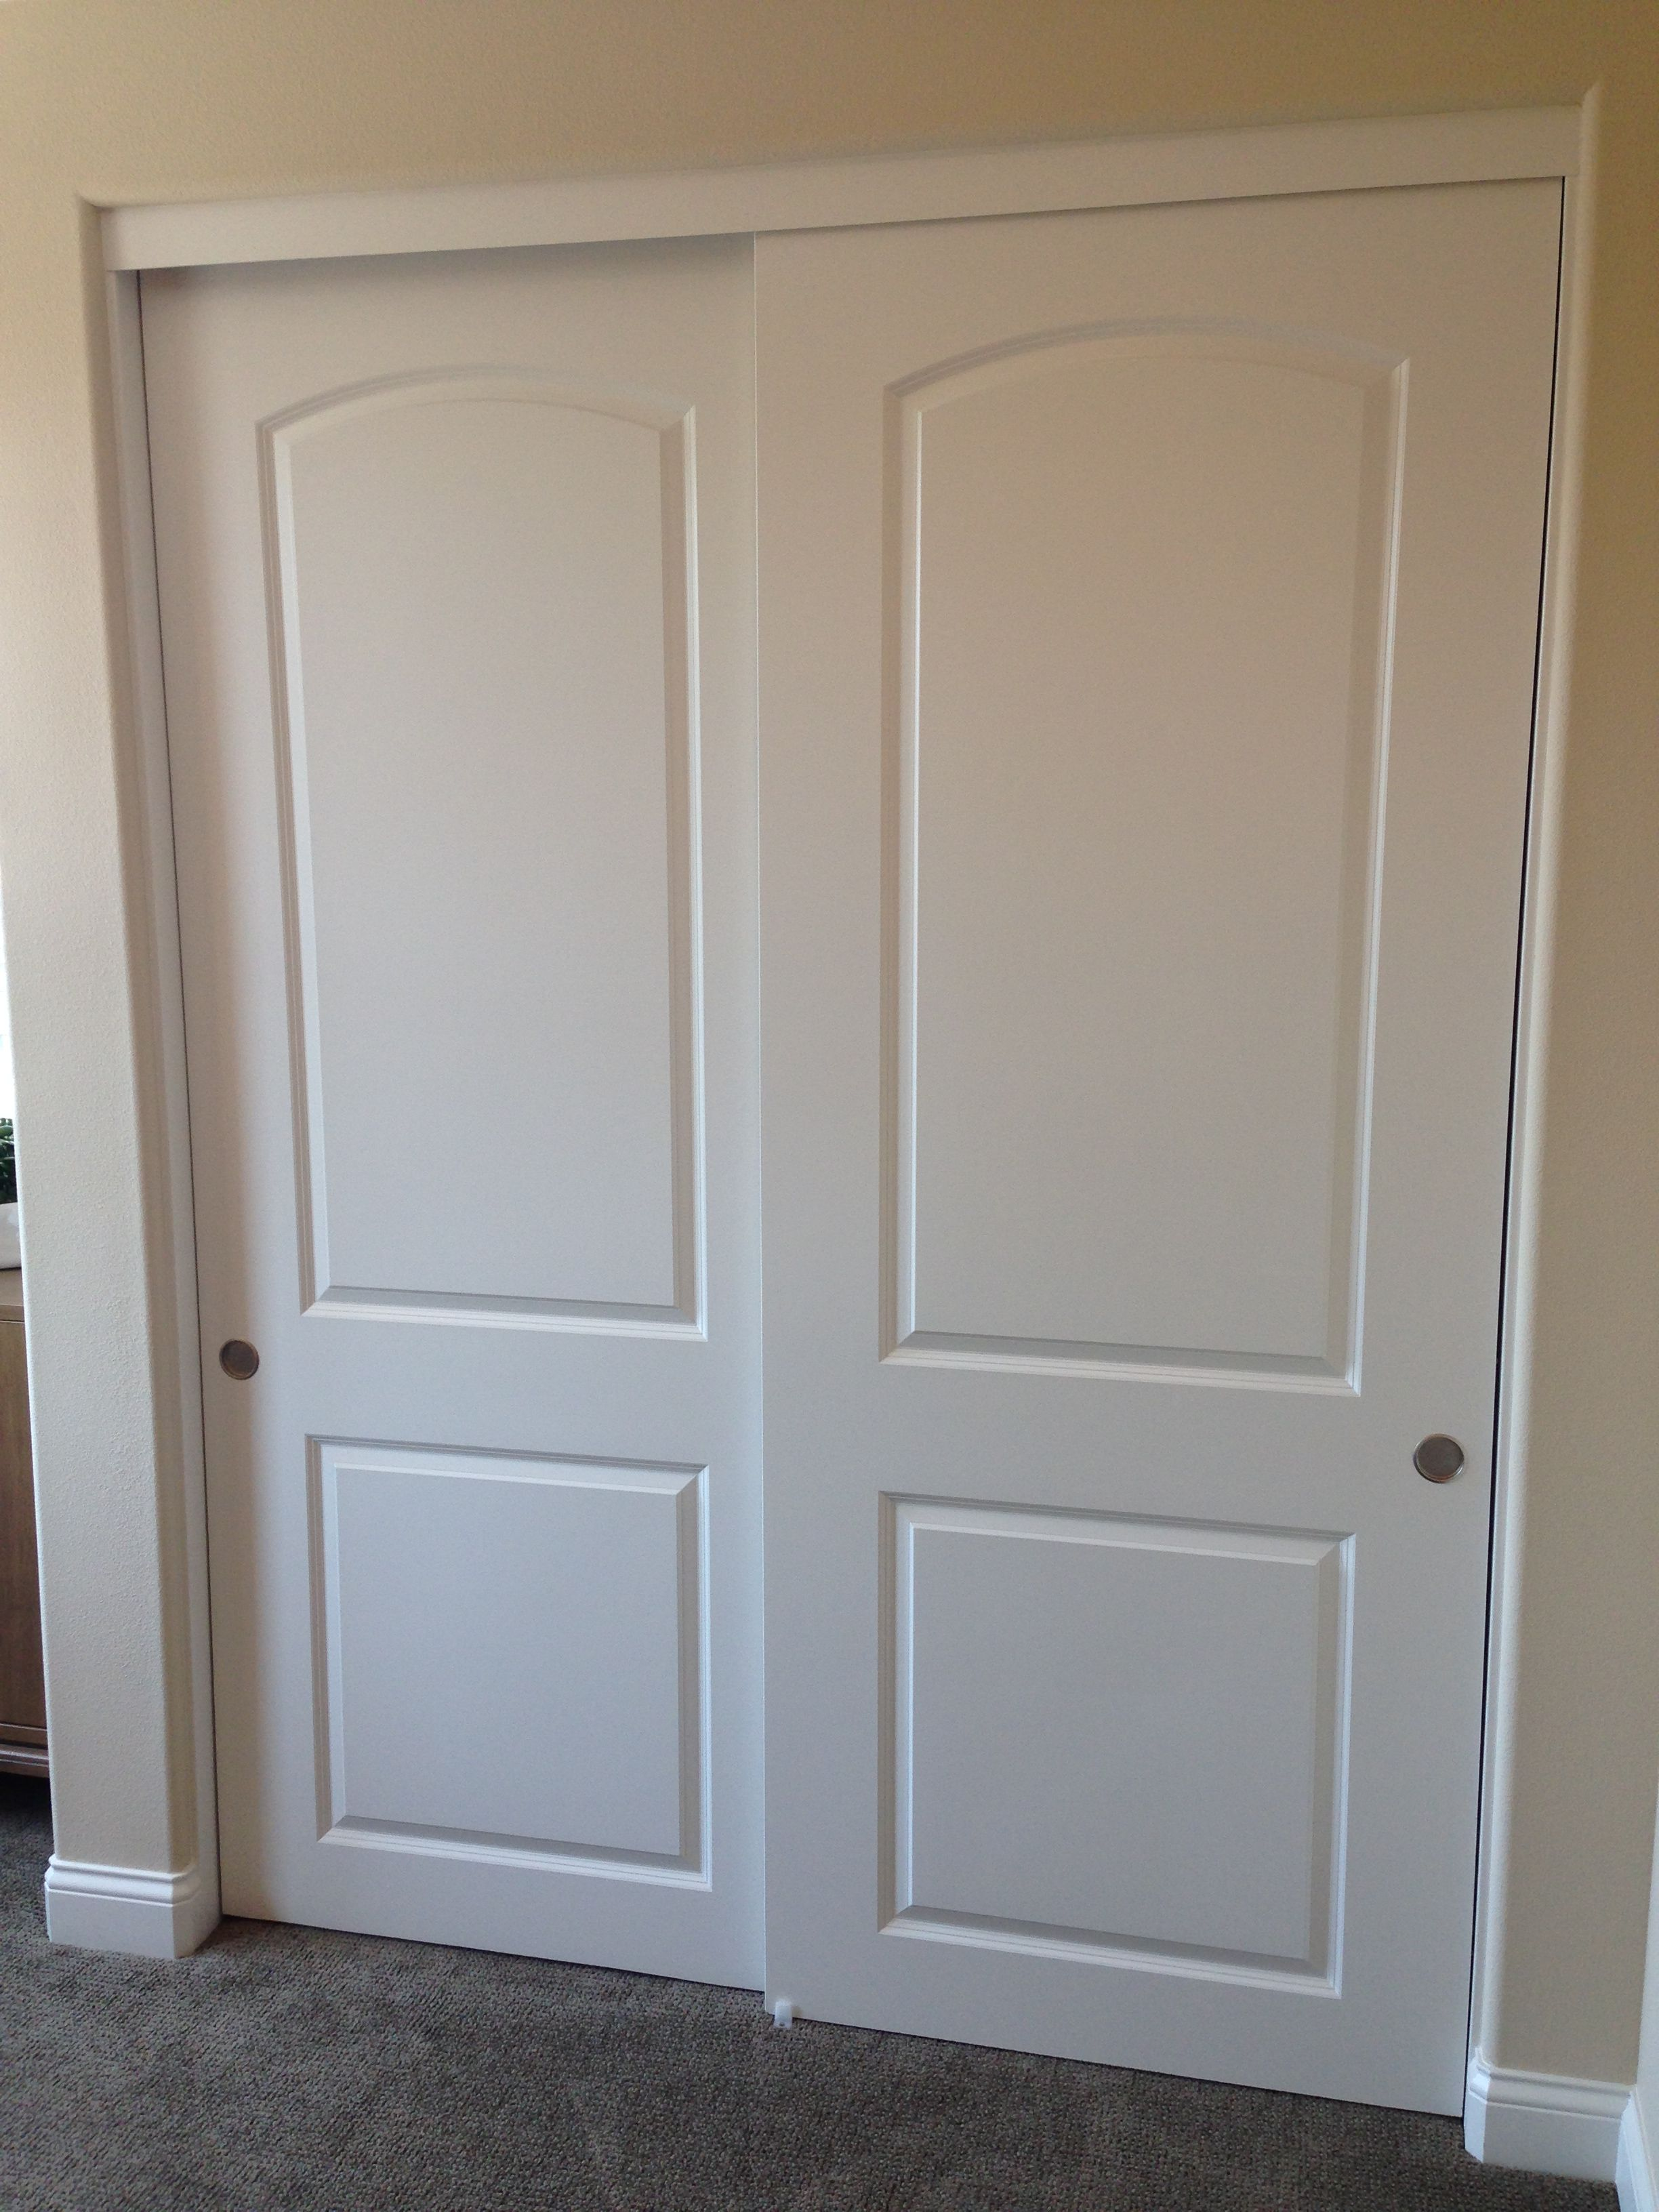 Best Of Hallway Sliding Closet Doors